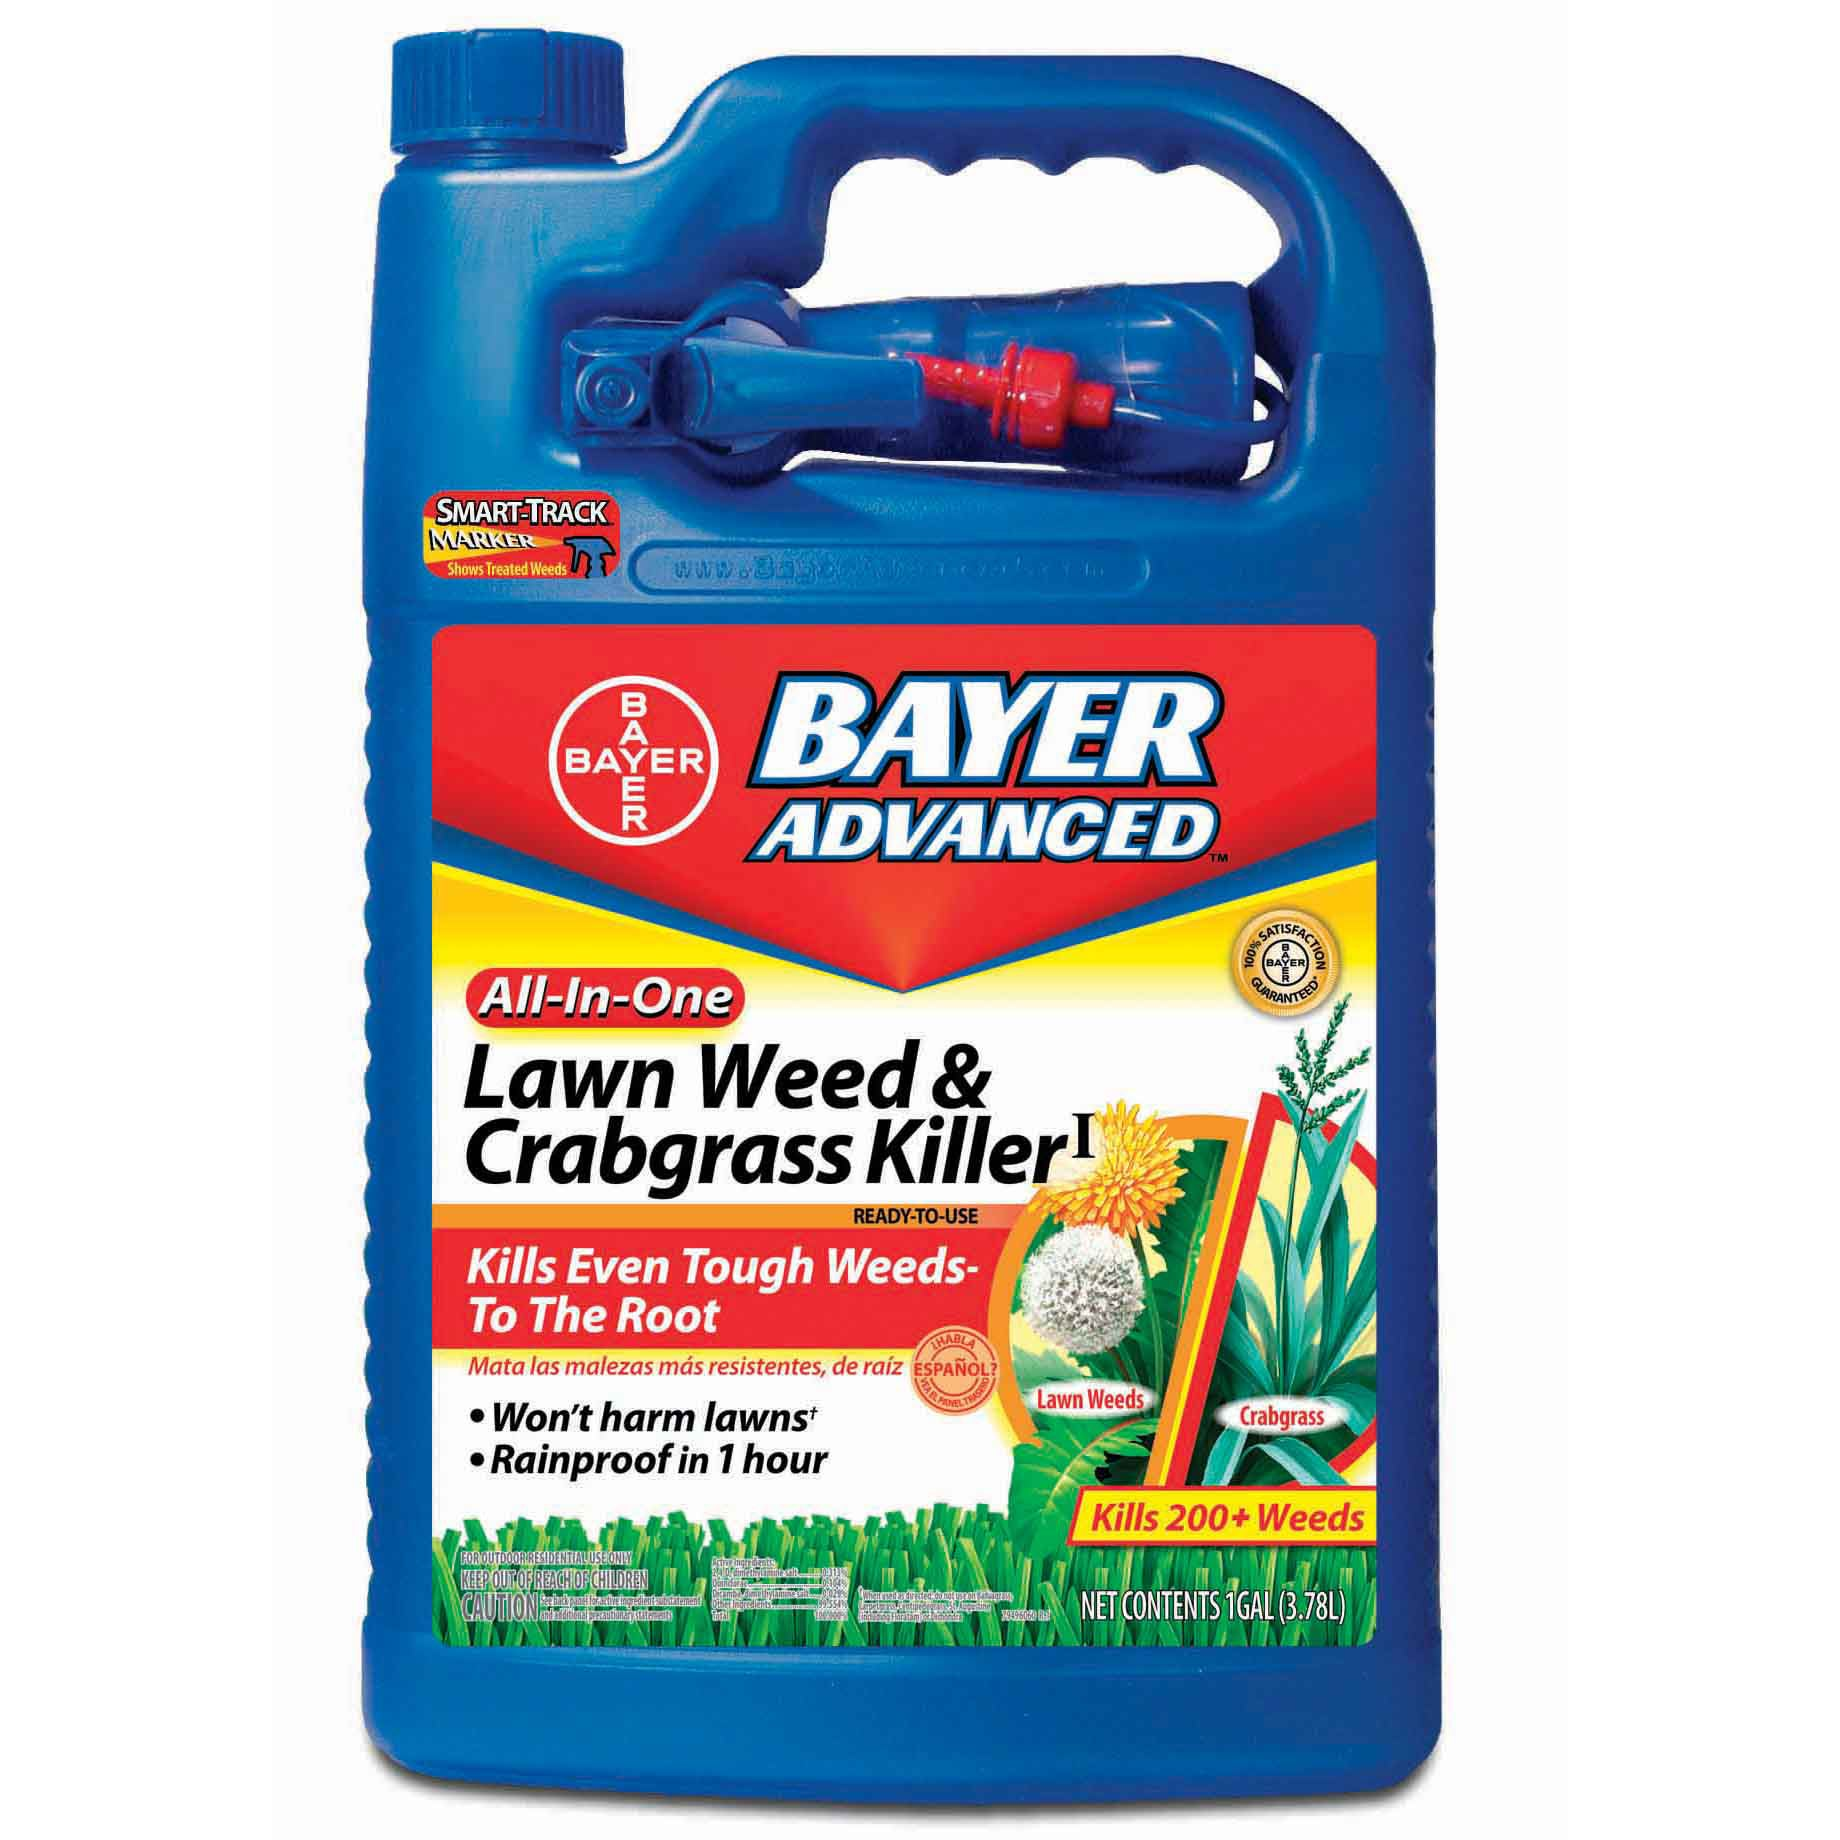 Bayer Advanced All-in-One Lawn Weed and Crabgrass Killer ...